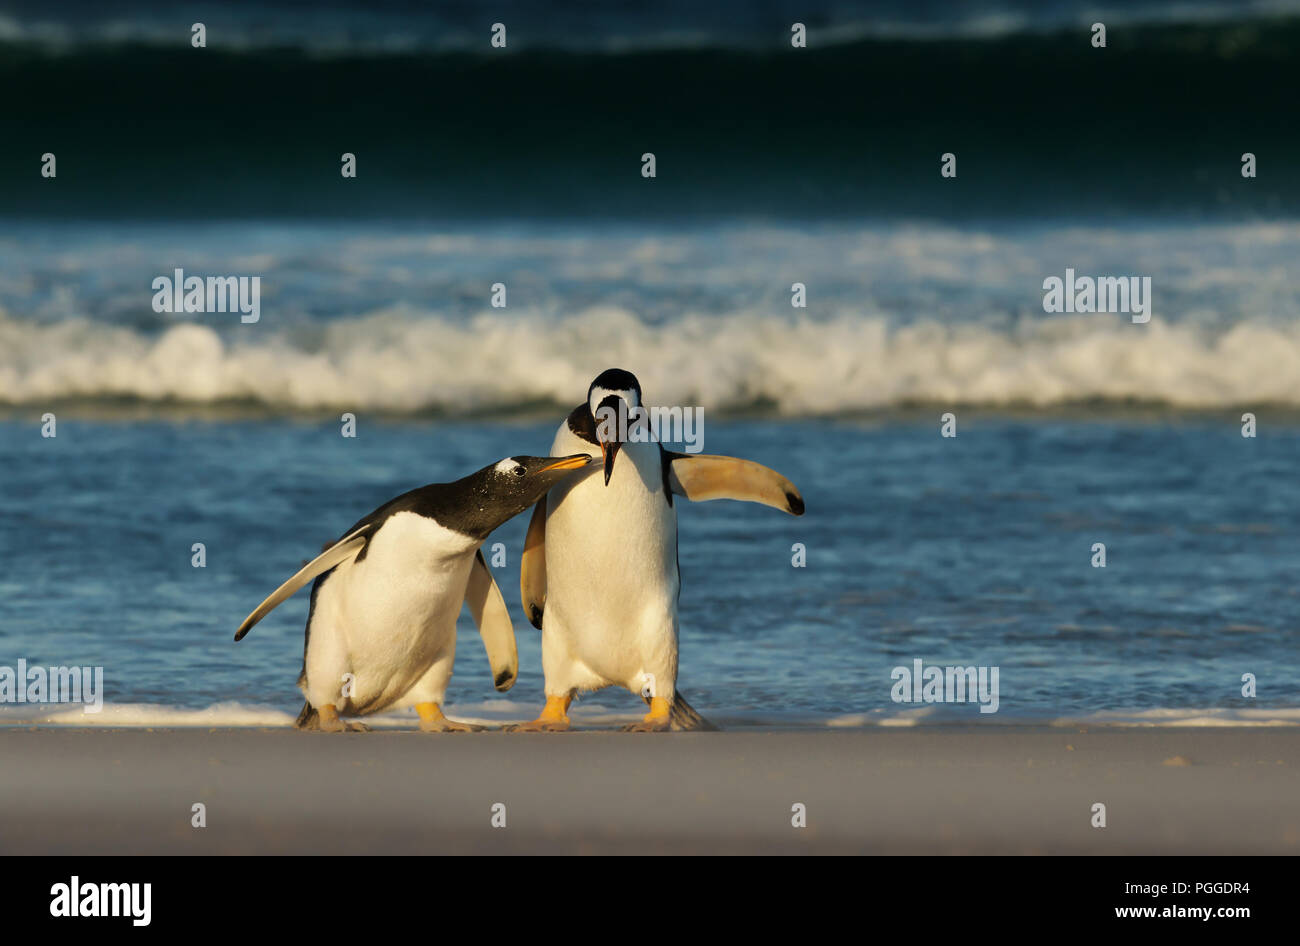 A penguin chick chasing its parent and asking for food, Falkland islands. - Stock Image